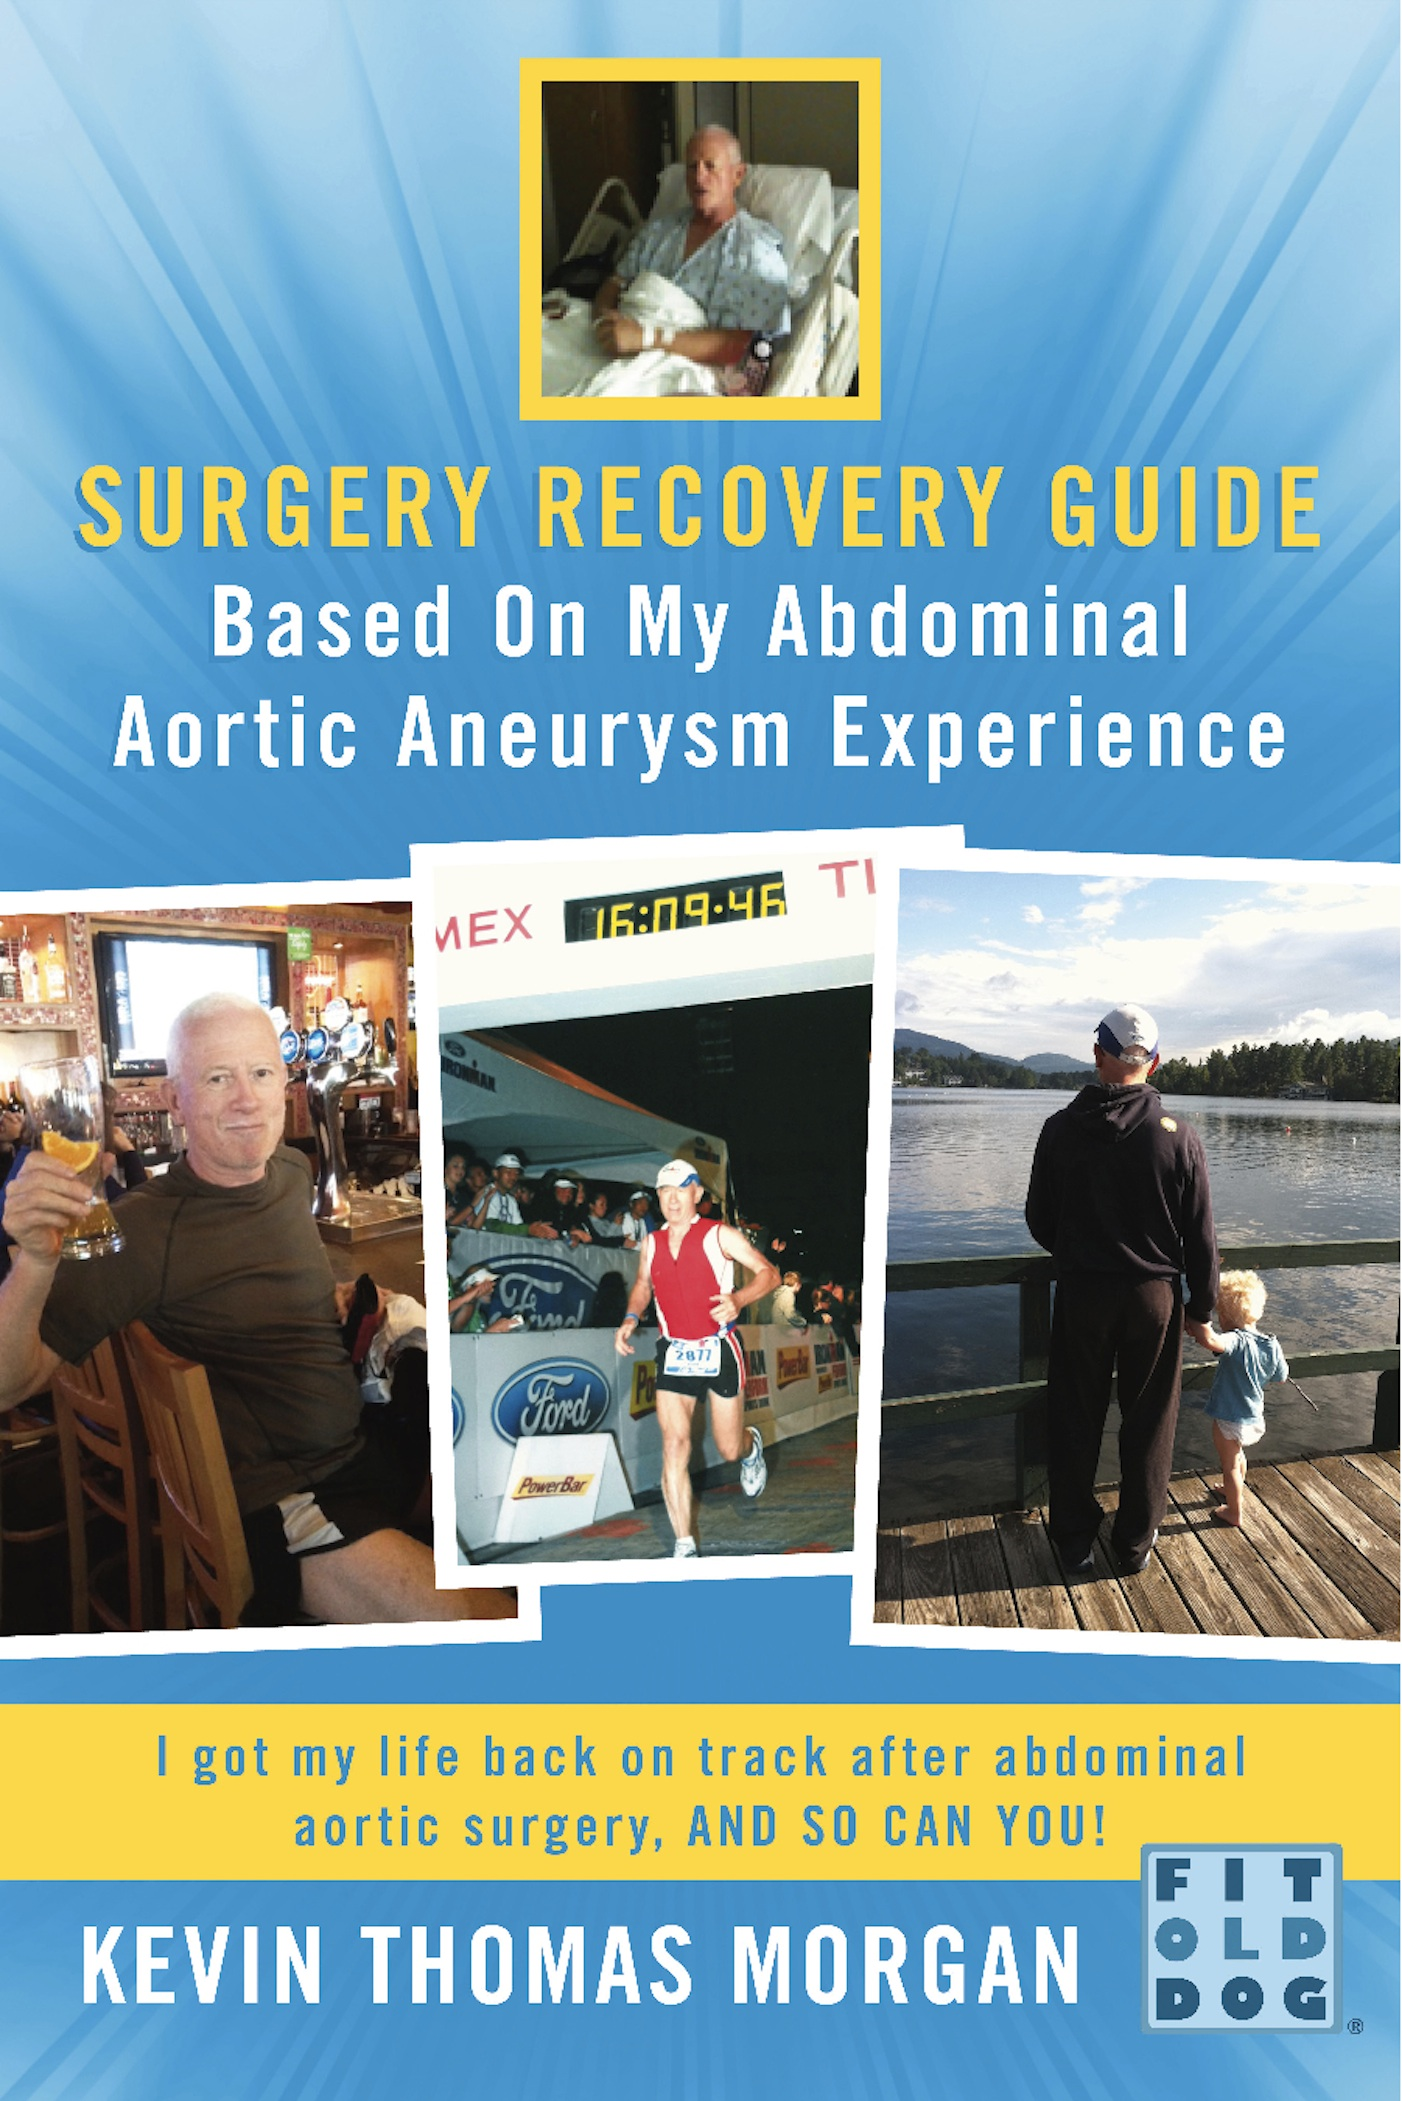 Surgery Recovery Guide Based On My Abdominal Aortic Aneurysm Experience